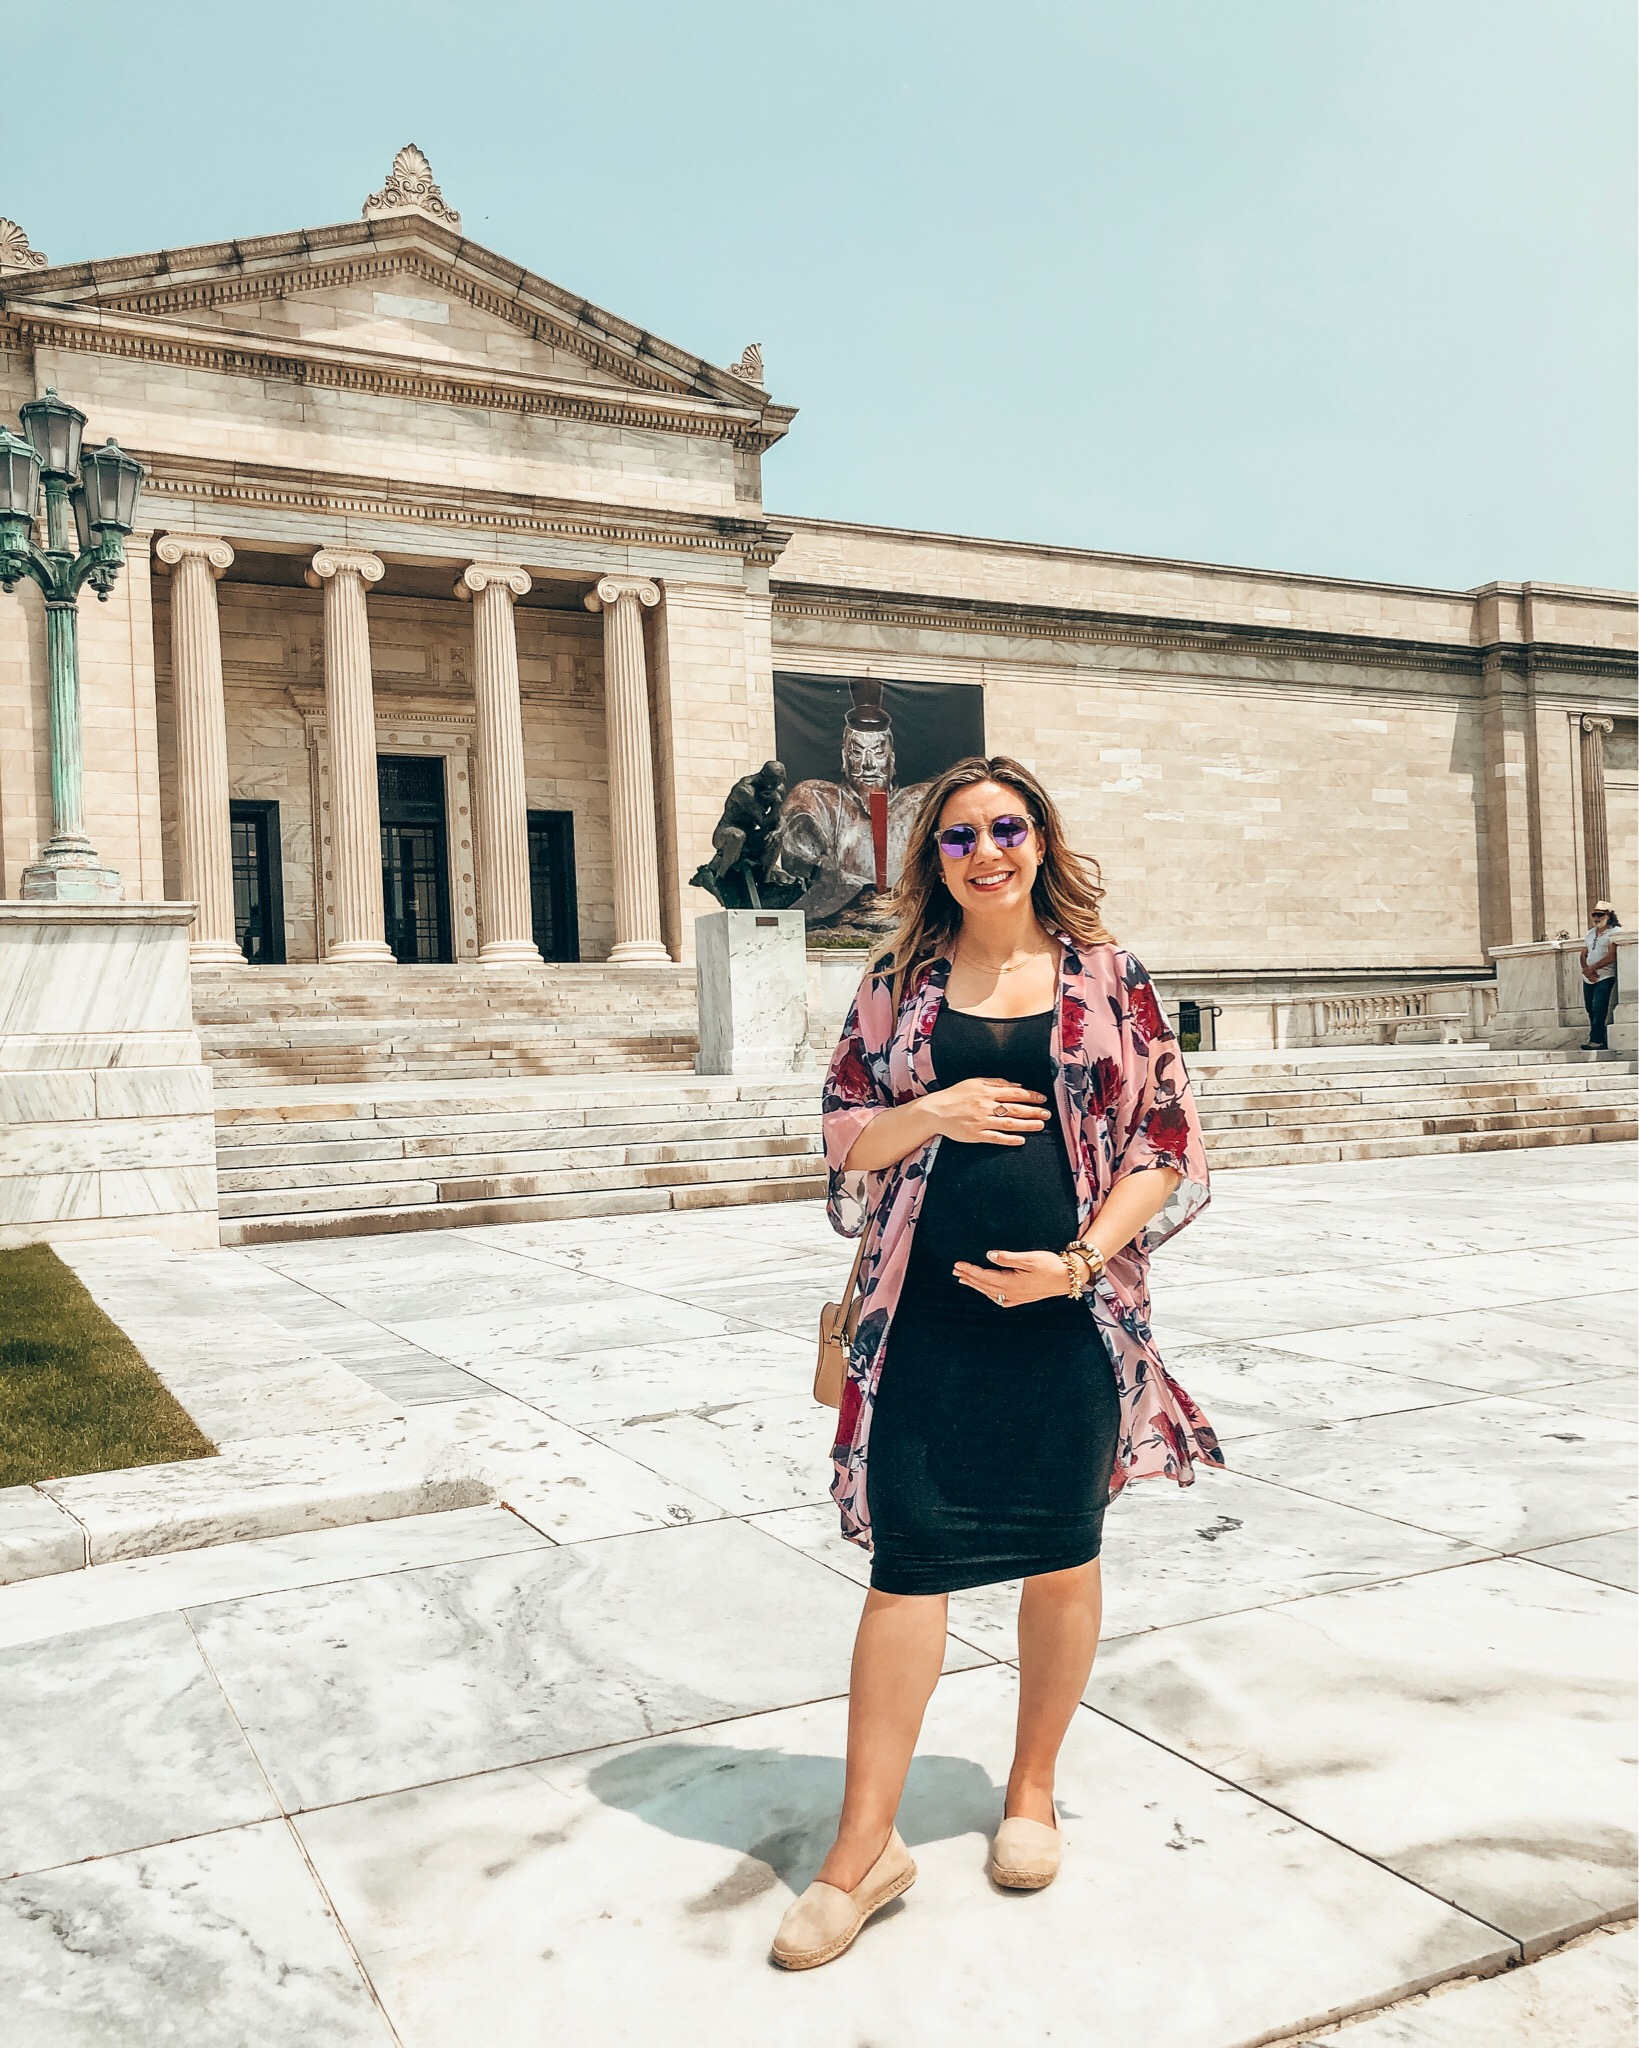 Summer maternity-friendly Shein clothing featured by top US fashion blog, Glass of Glam: image of a pregnant woman wearing an Ingrid & Isabel tank dress, SheIn floral kimono, Zappos espadrilles, and Warby Parker sunglasses.